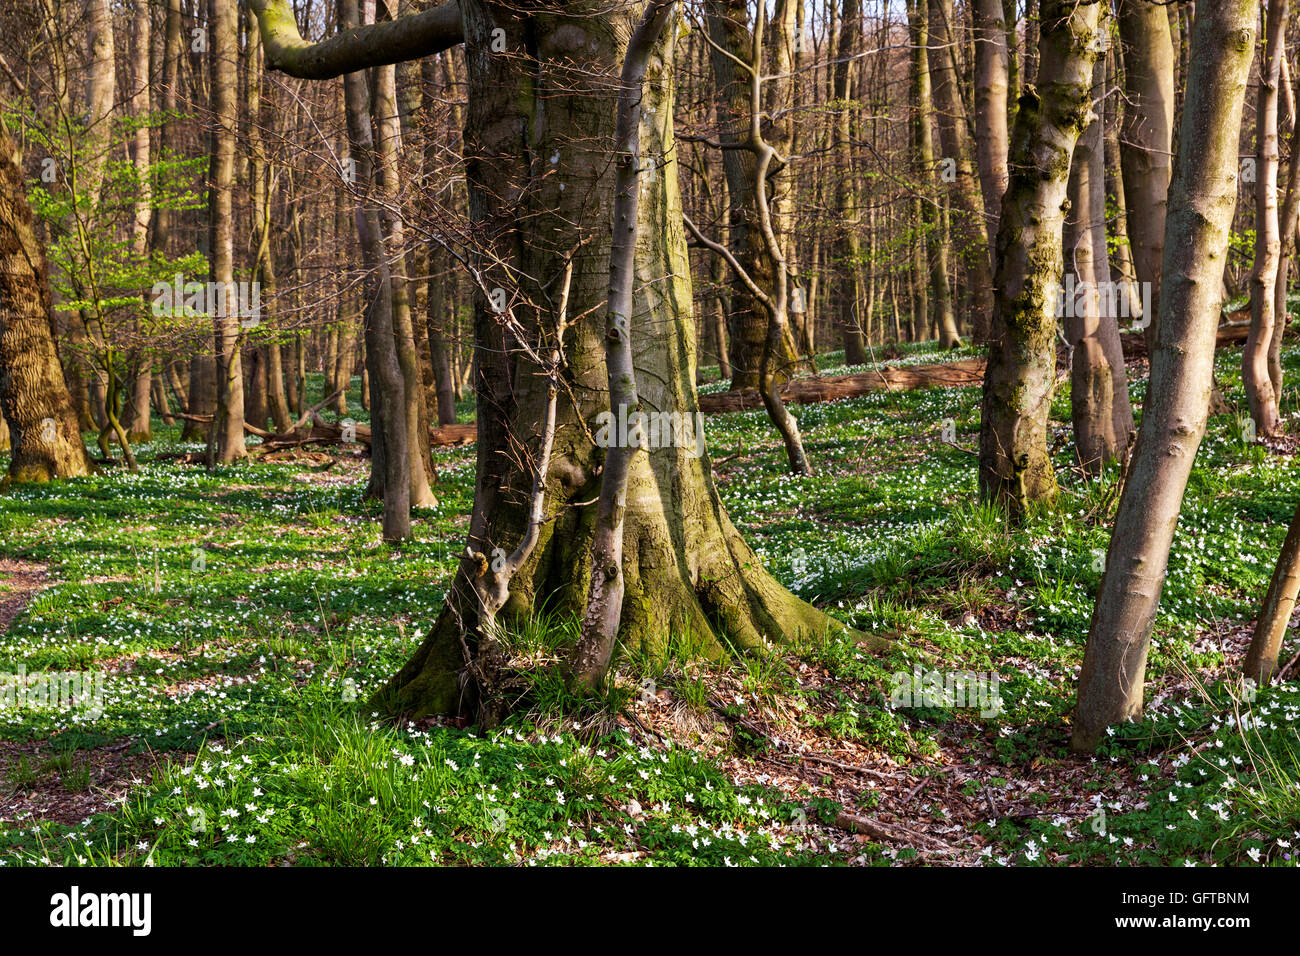 Blooming anemones in a beech forest, Europe. - Stock Image